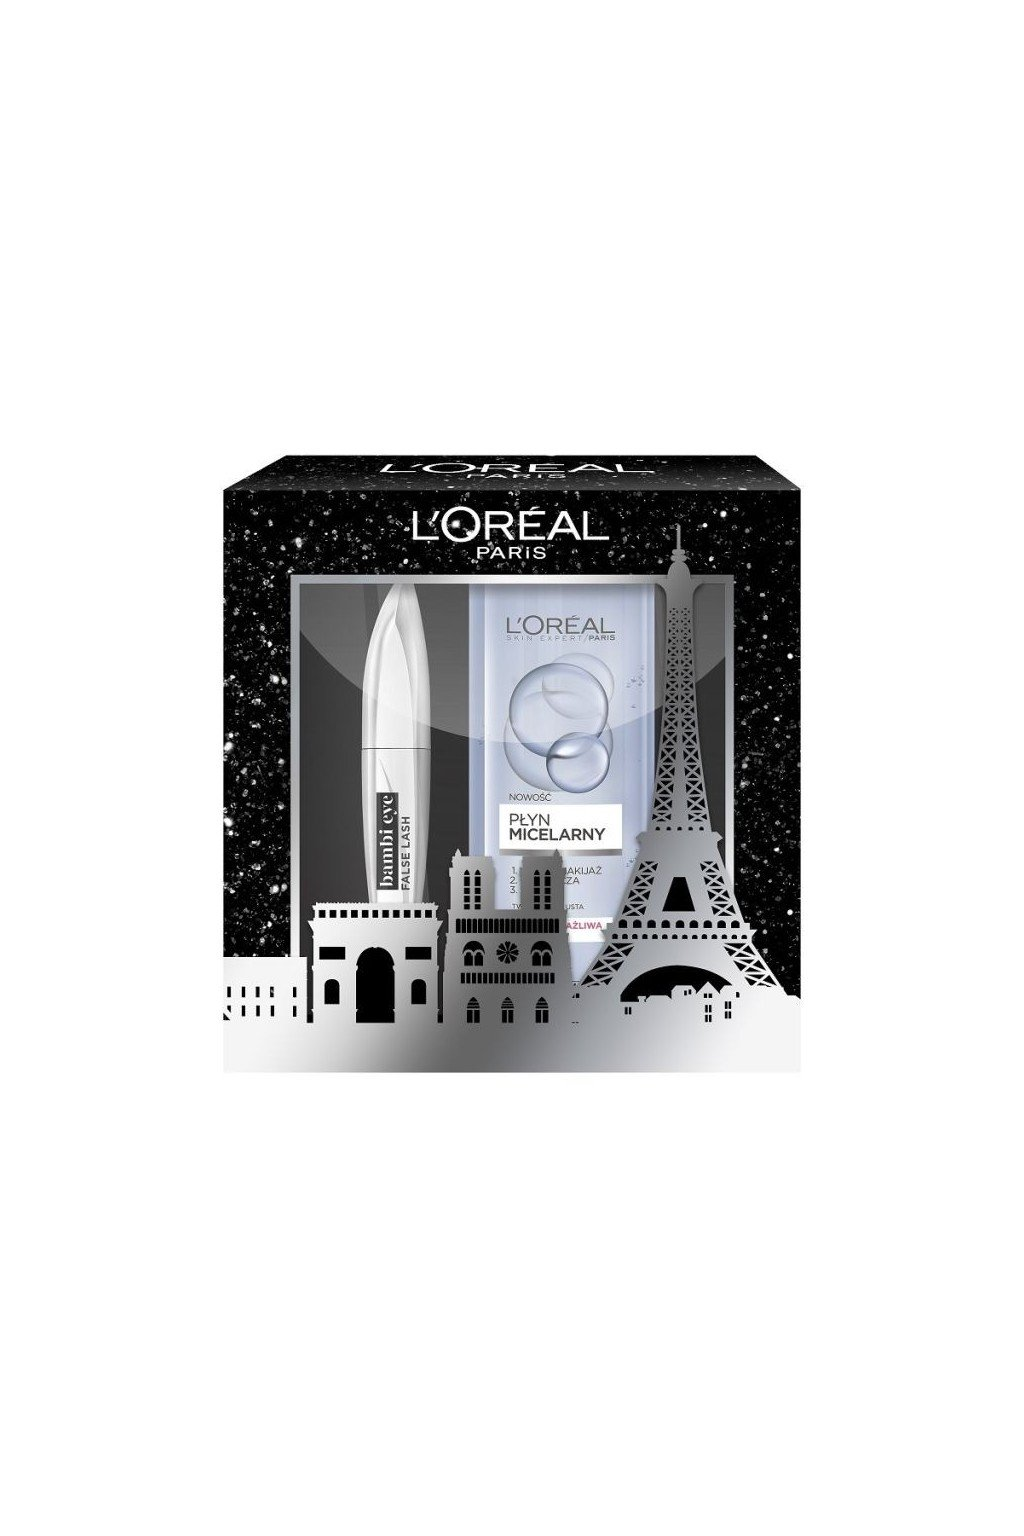 loreal false lash bambi rasenka black micelarni voda 400ml